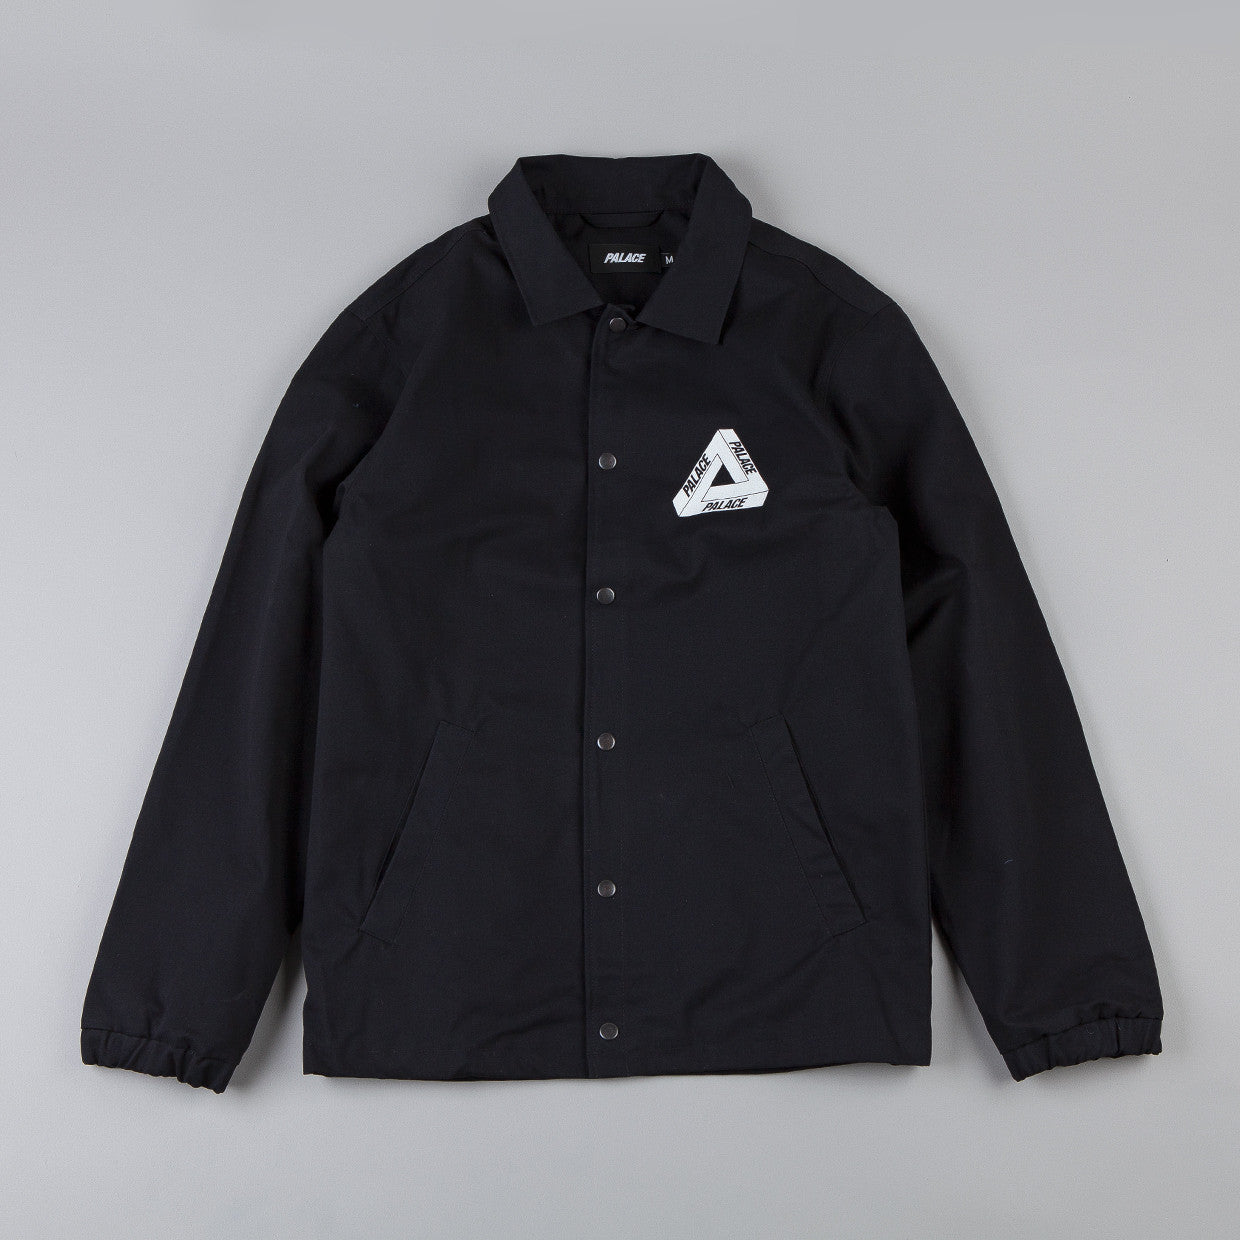 Palace Tri Ferg Glow Coach Jacket Black